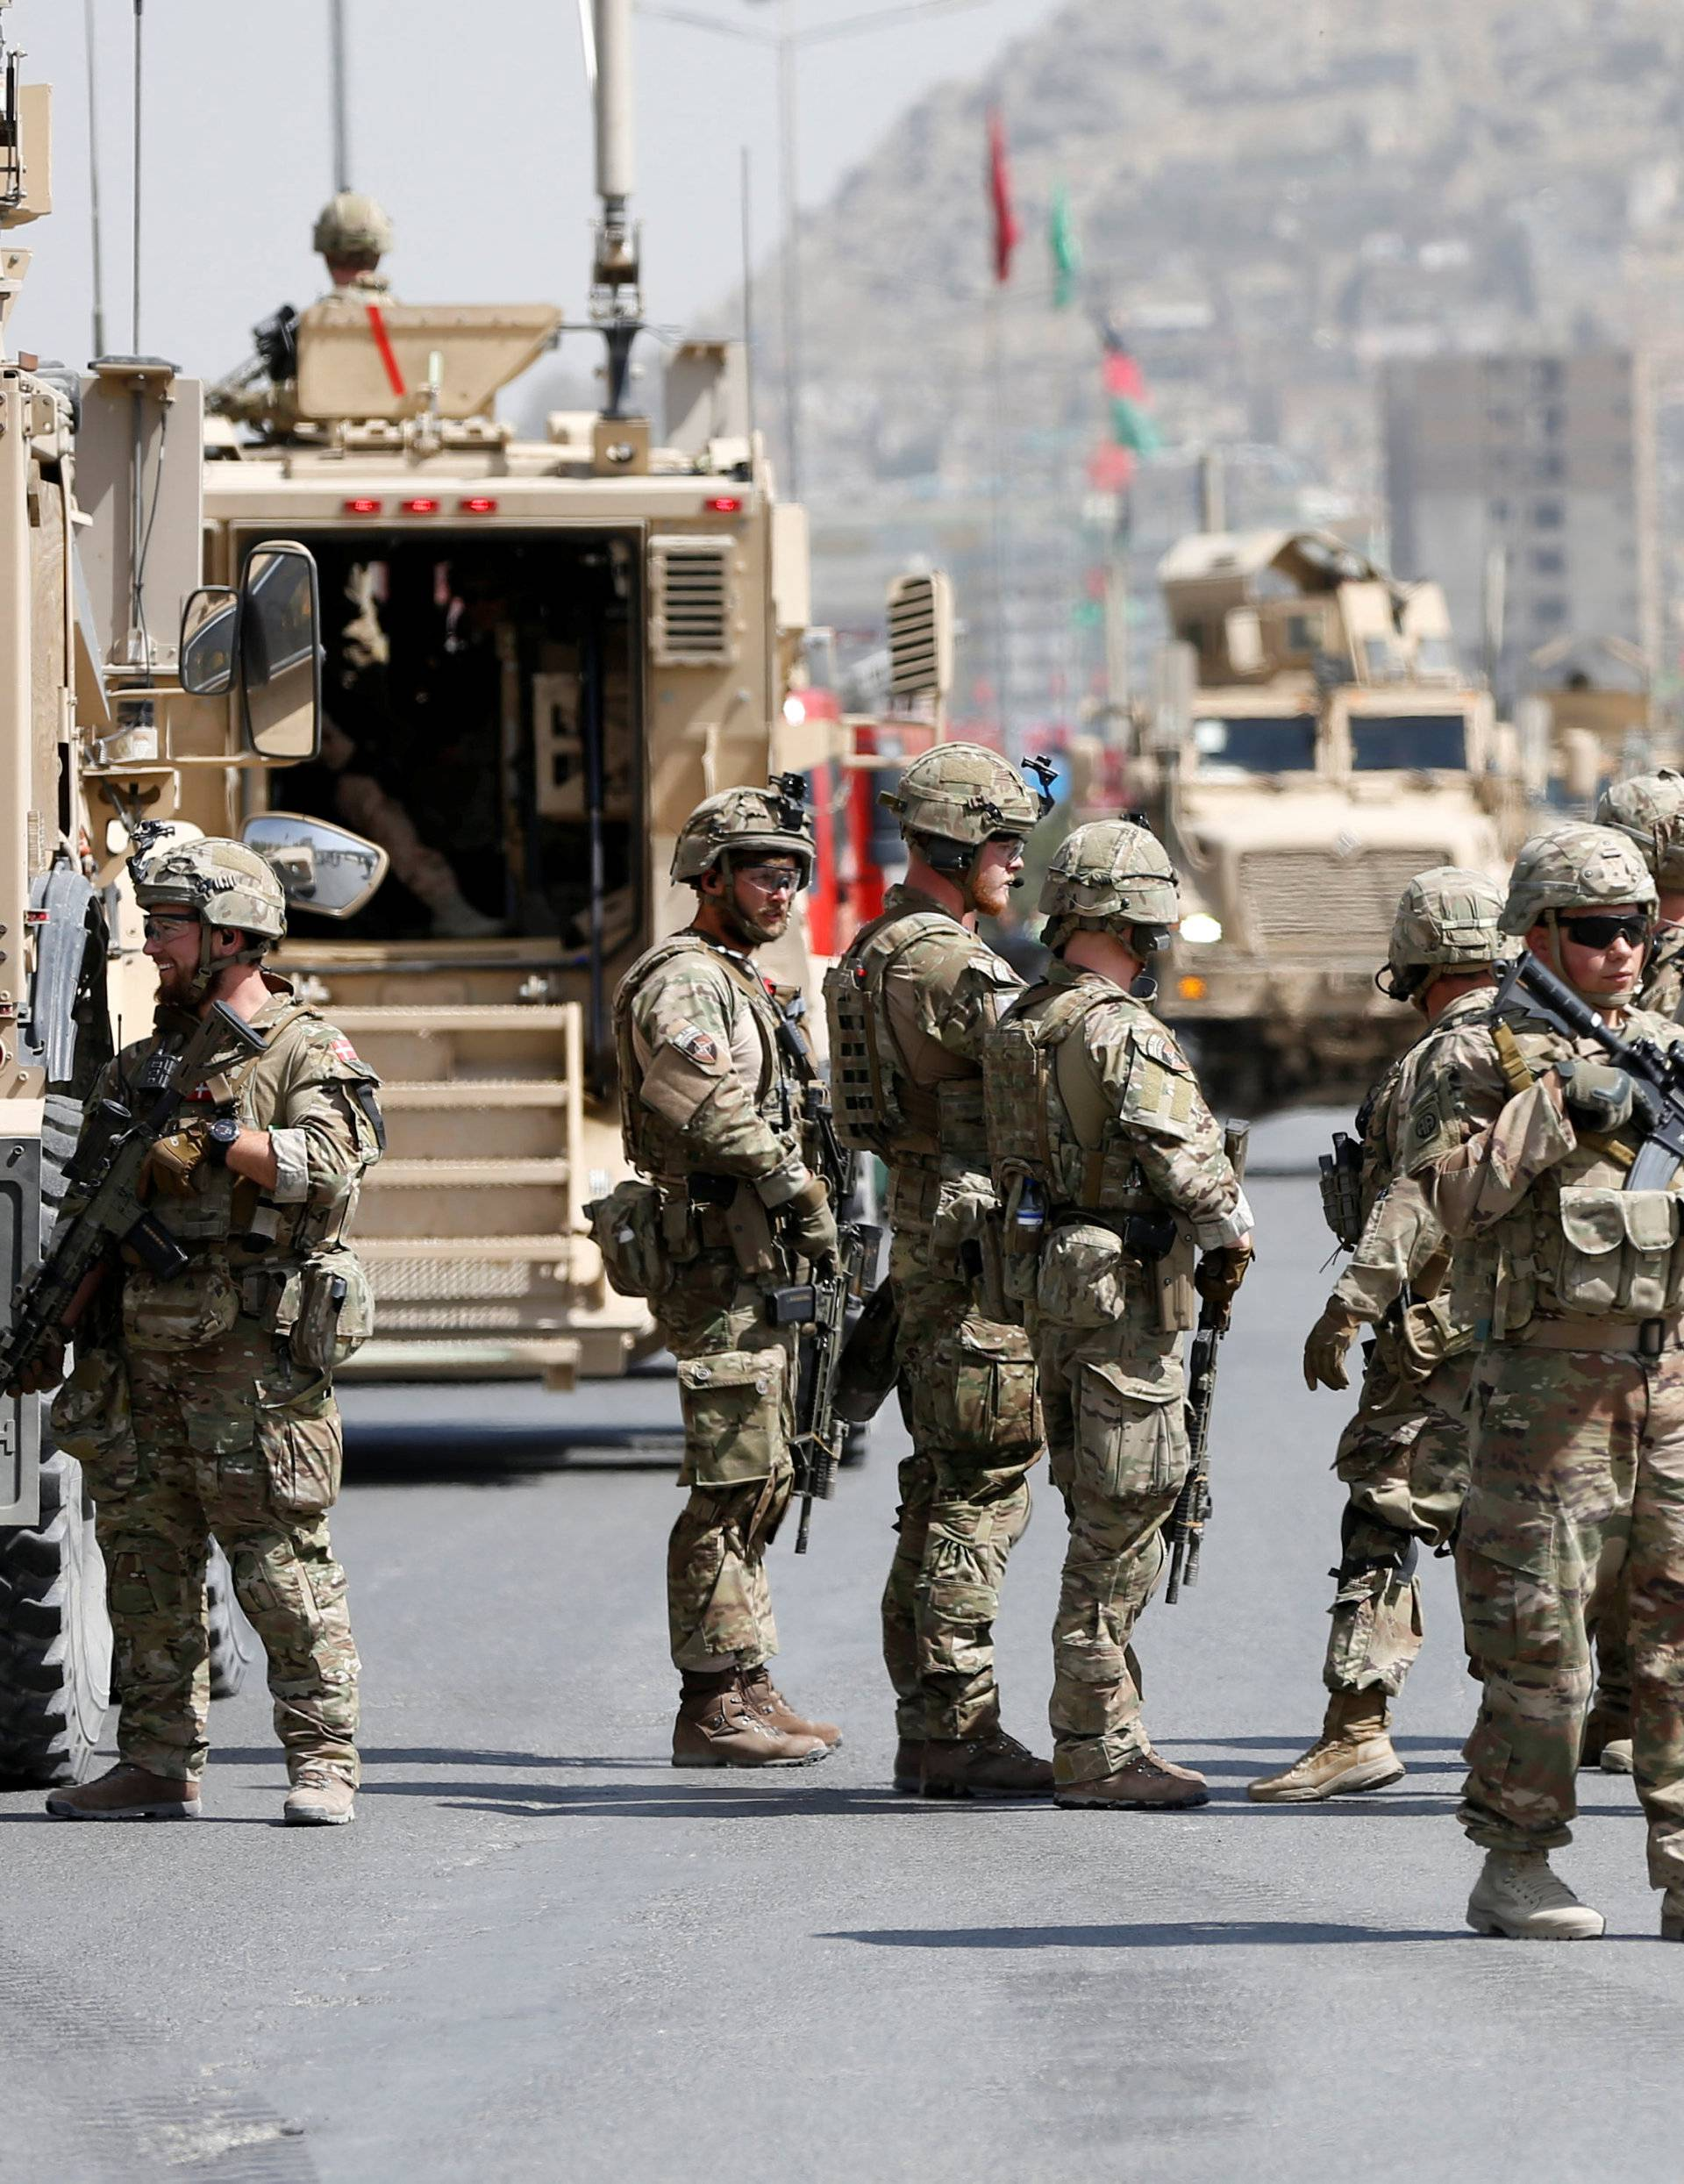 U.S. and NATO troops arrive at the site of a car bomb attack in Kabul, Afghanistan